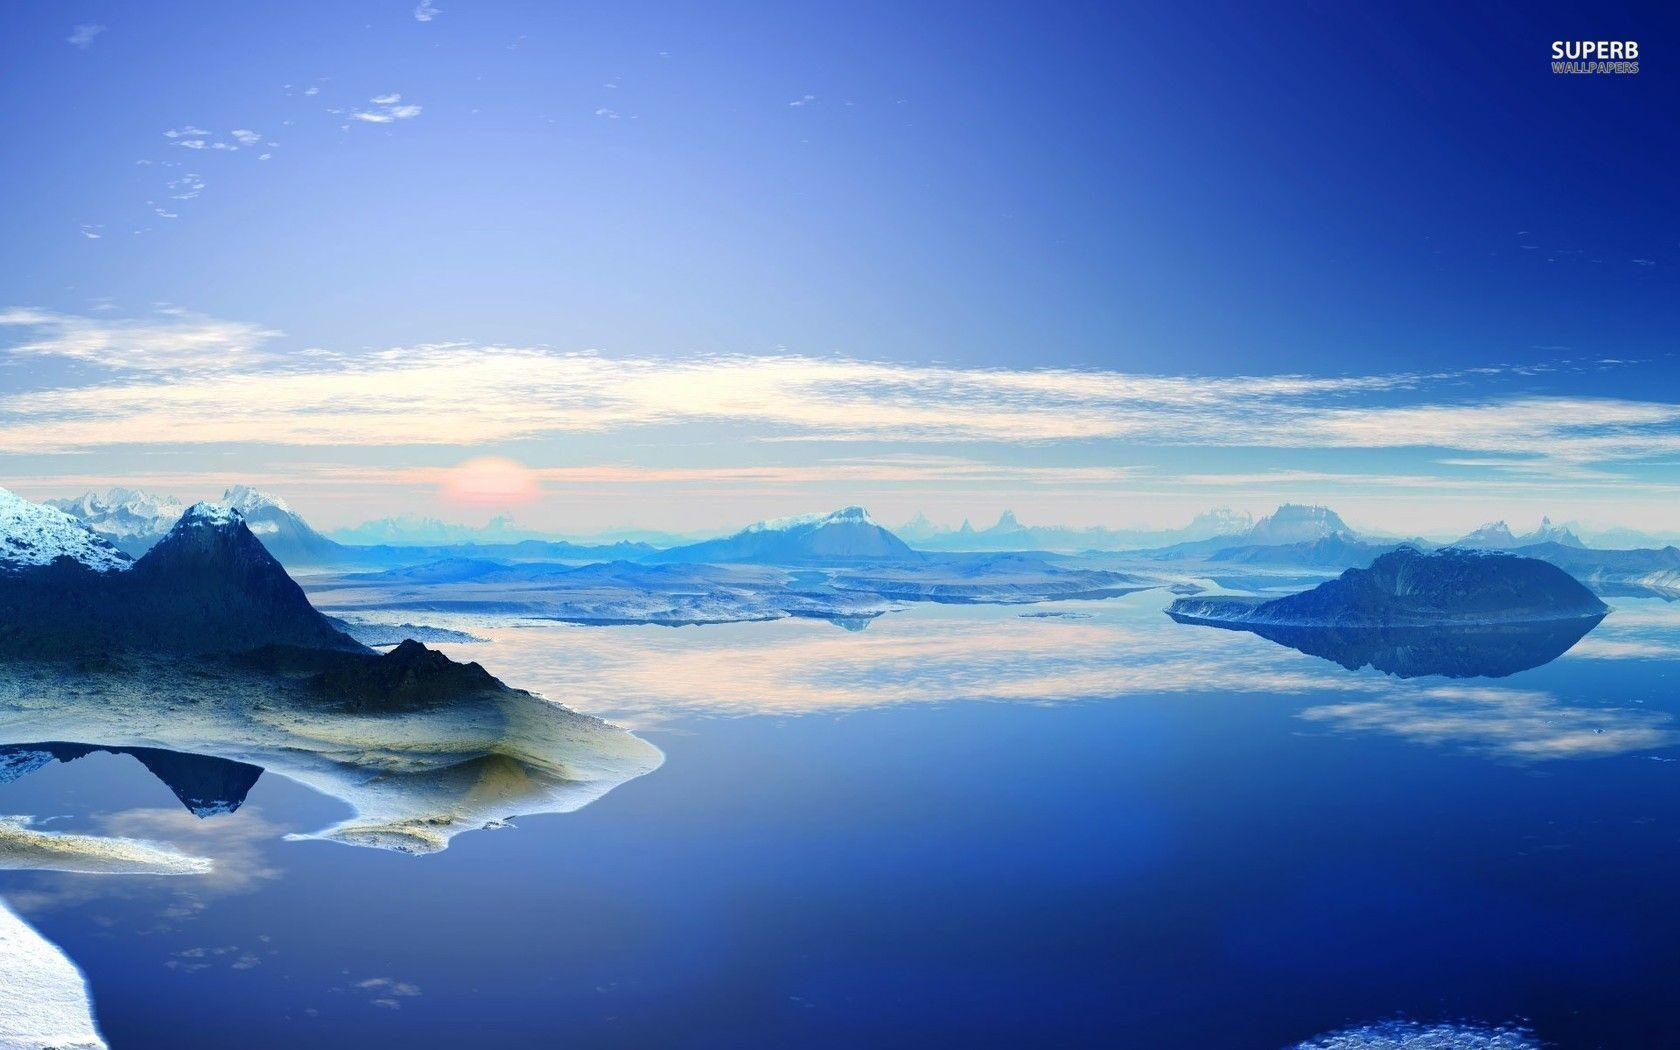 Antarctica Wallpaper : Antarctica Wallpaper Nature Wallpapers ...